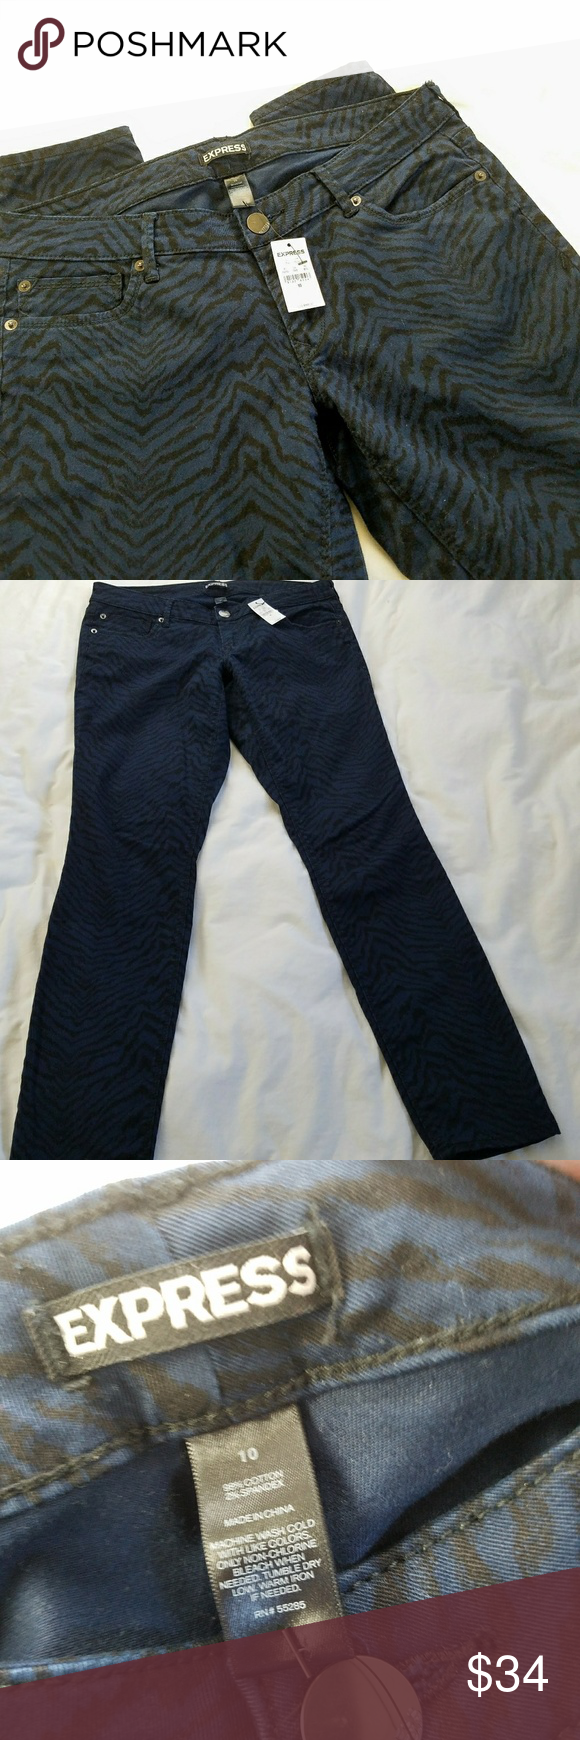 """NEW Express Black & Blue Zebra Jeans Express Black and Navy blue zebra print jeans. Size 10. NEW With Tags - originally $88.00  Navy blue 5-pocket skinny jeans with black zebra print?  Fabric Content: 98% Cotton, 2% Spandex  Measurements (lying flat, unstretched): Waist: 17"""" Rise: 7.5"""" Inseam: 30"""" Leg opening: 5.25"""" Express Jeans Skinny"""